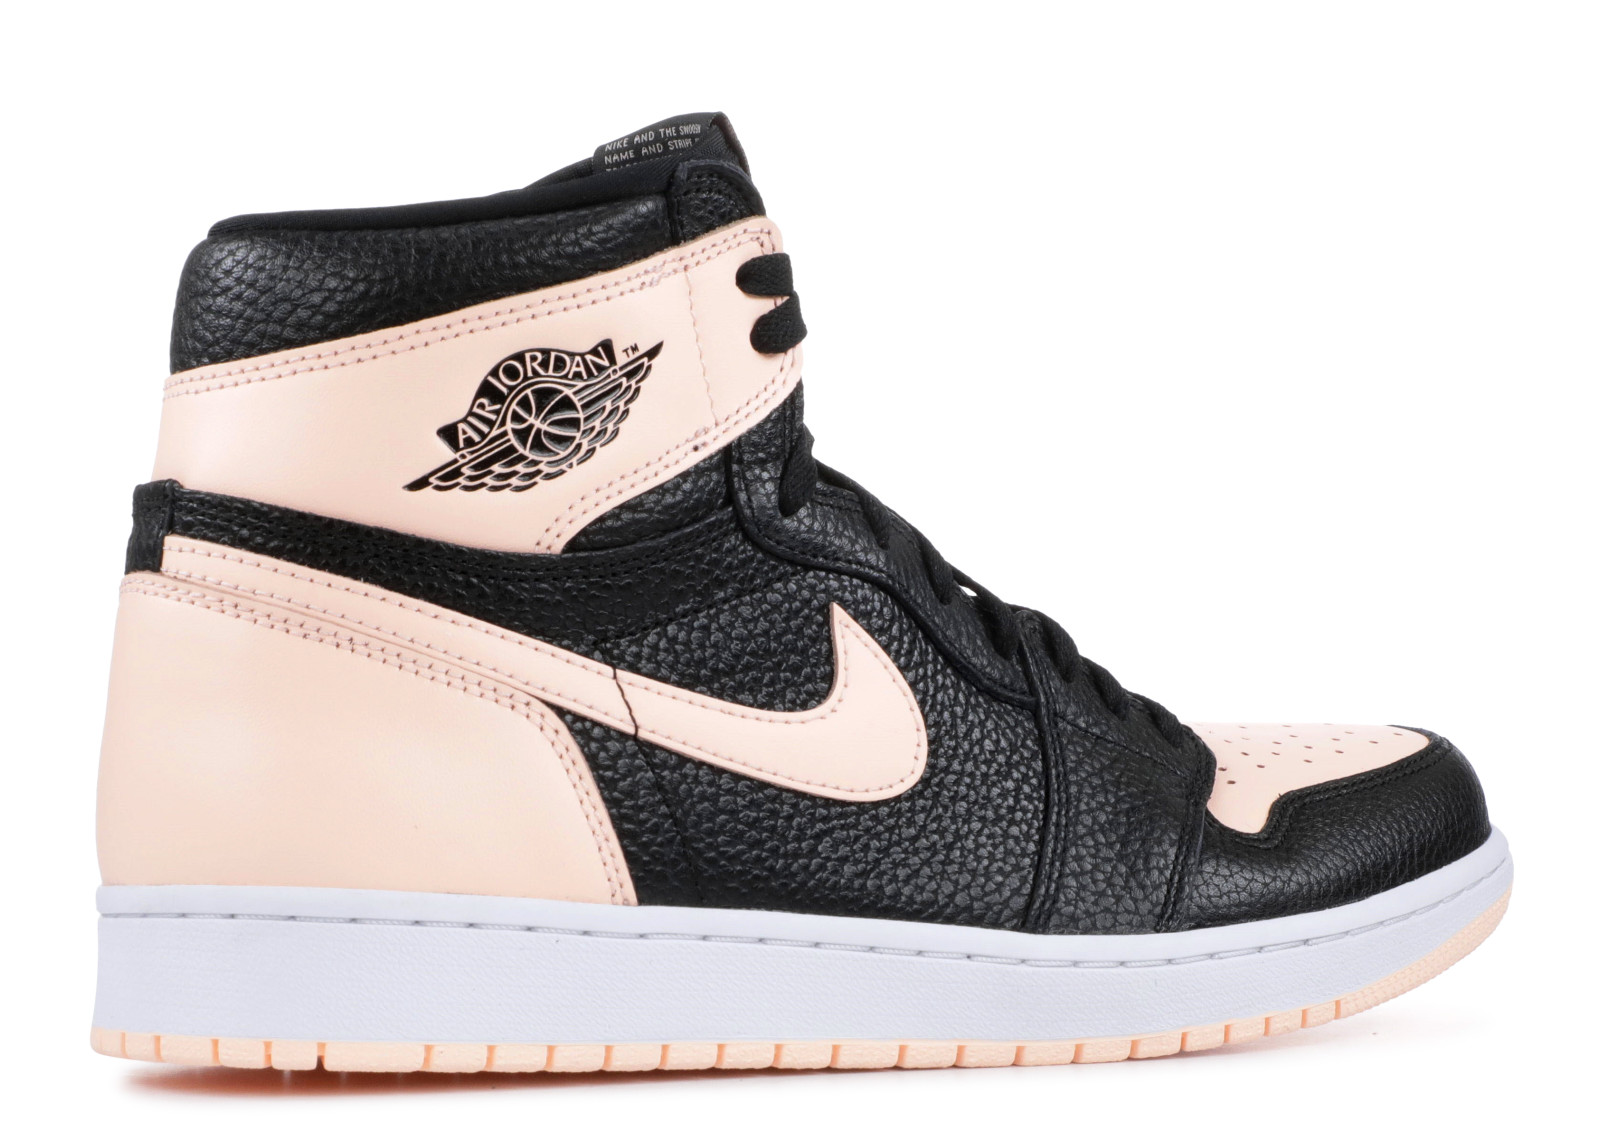 b8084a11cada Jordan 1 Retro High Black Crimson Tint - 3